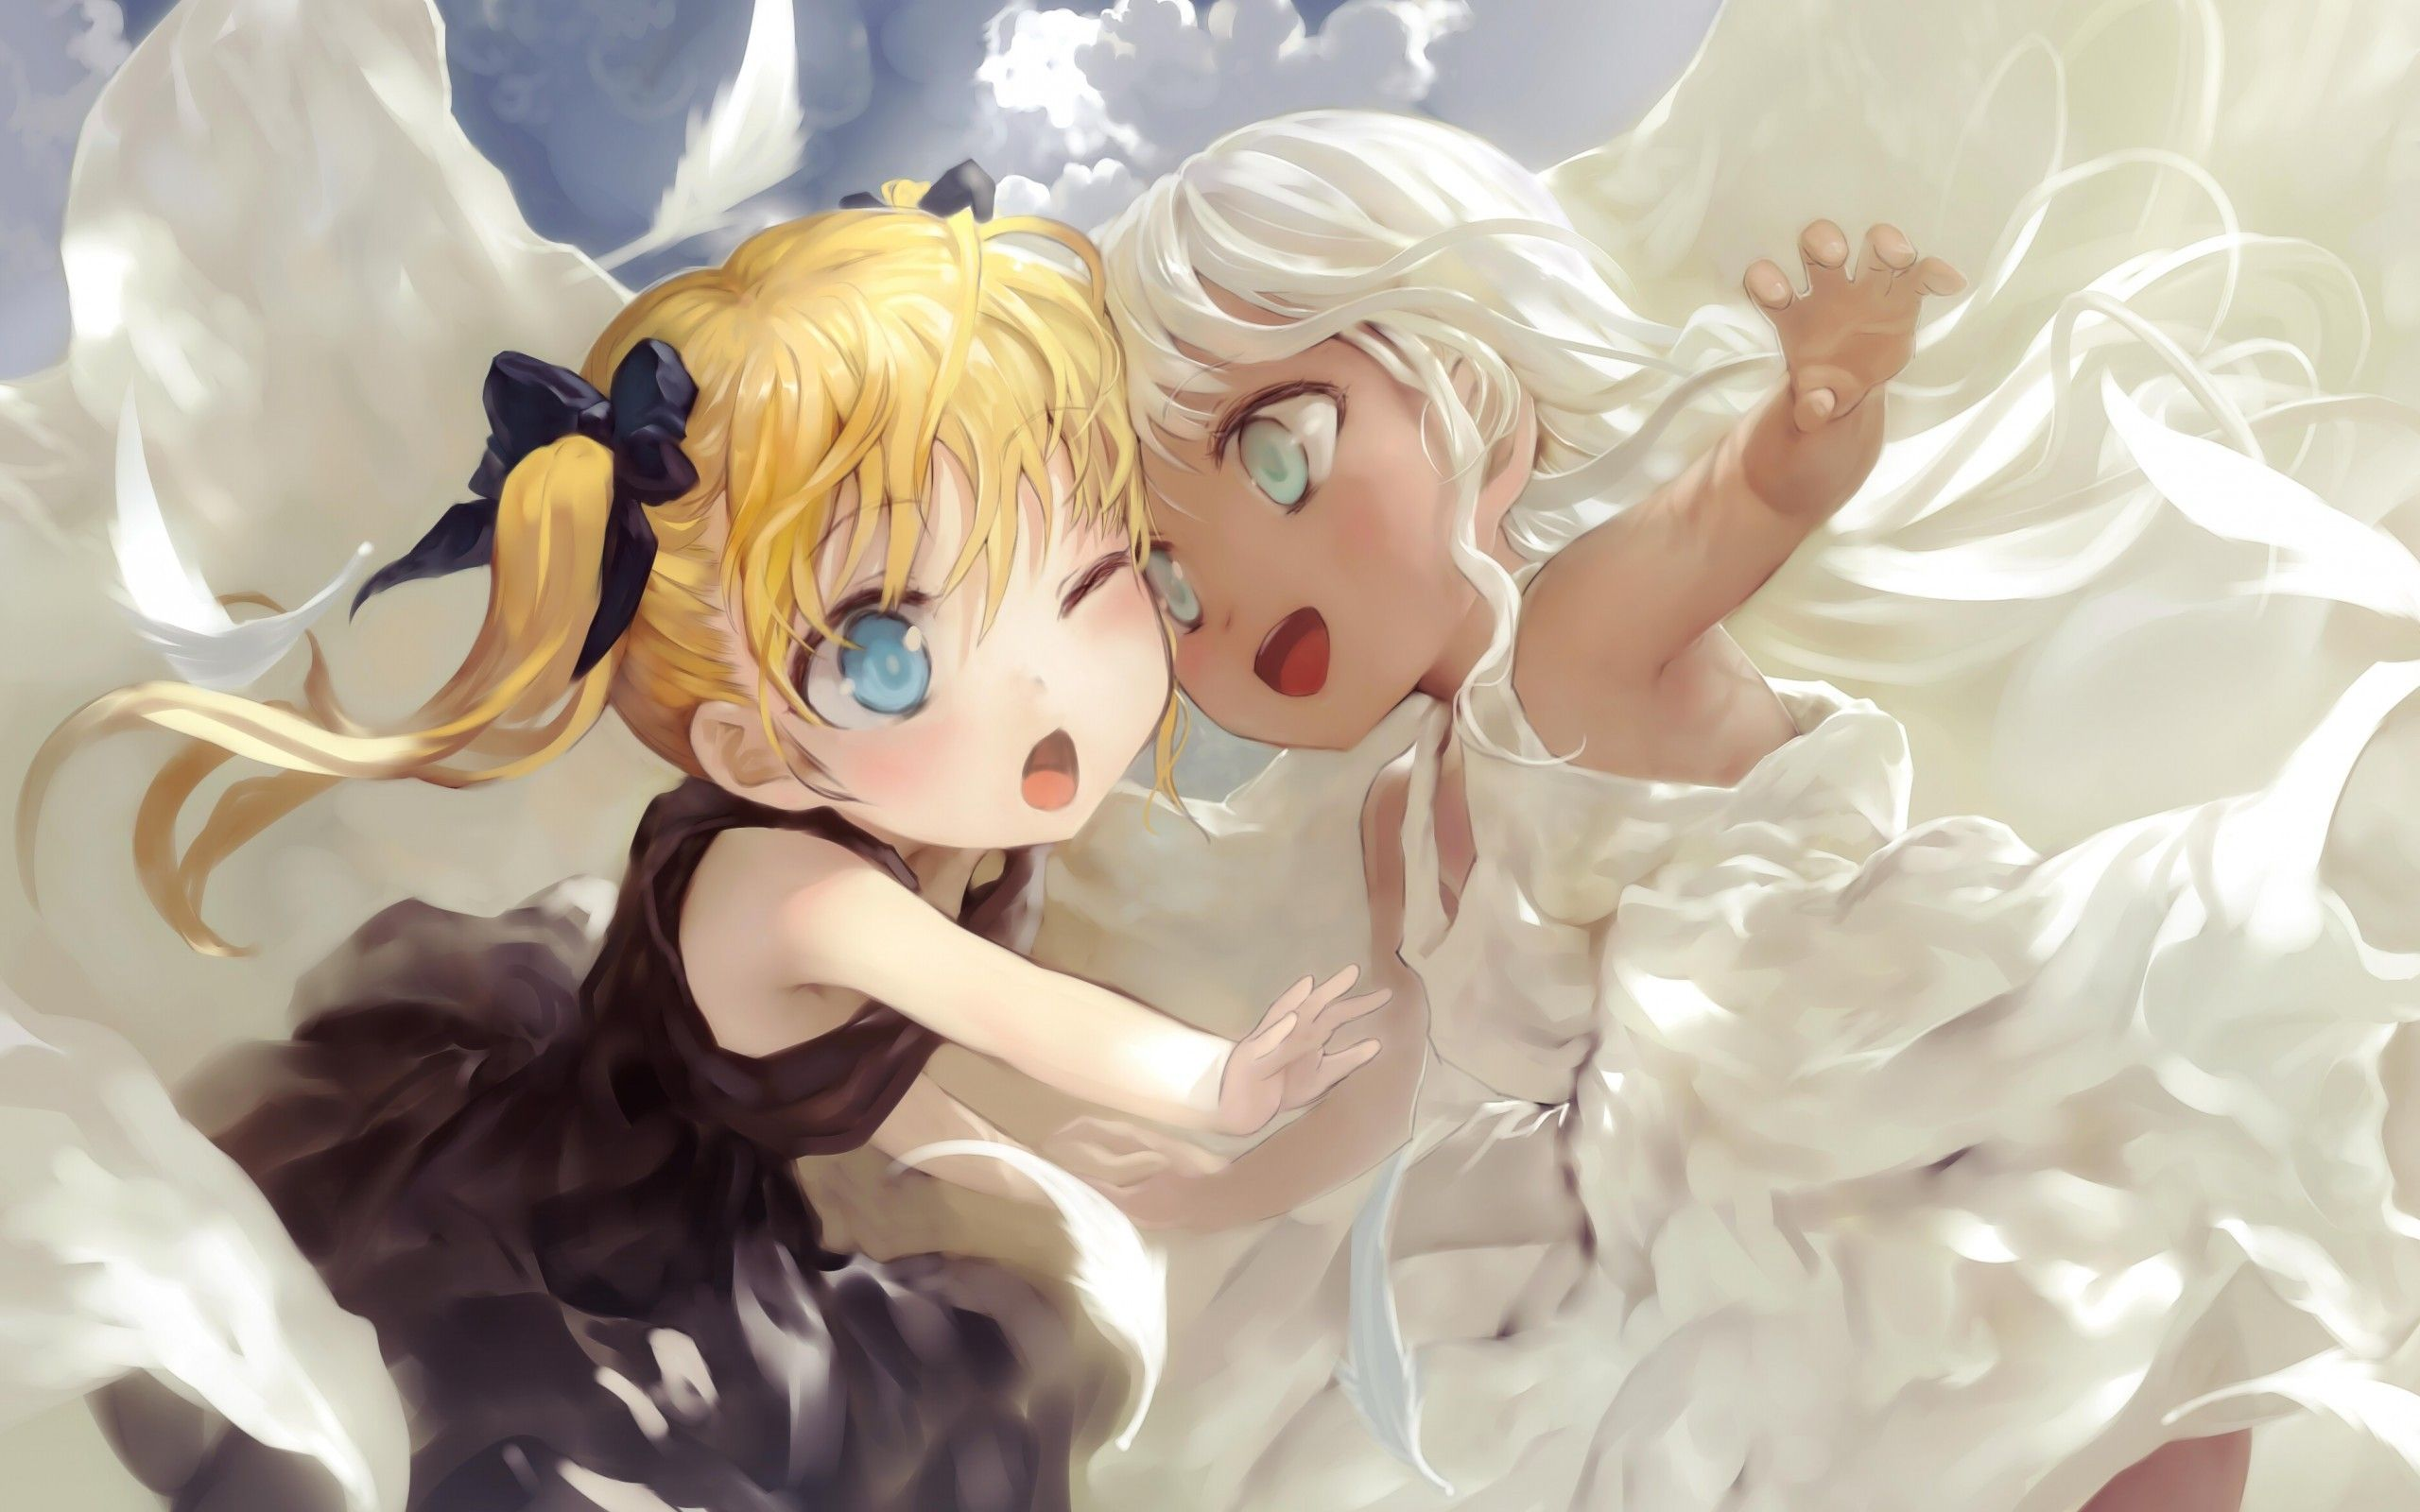 Anime Kids Wallpapers - Top Free Anime Kids Backgrounds